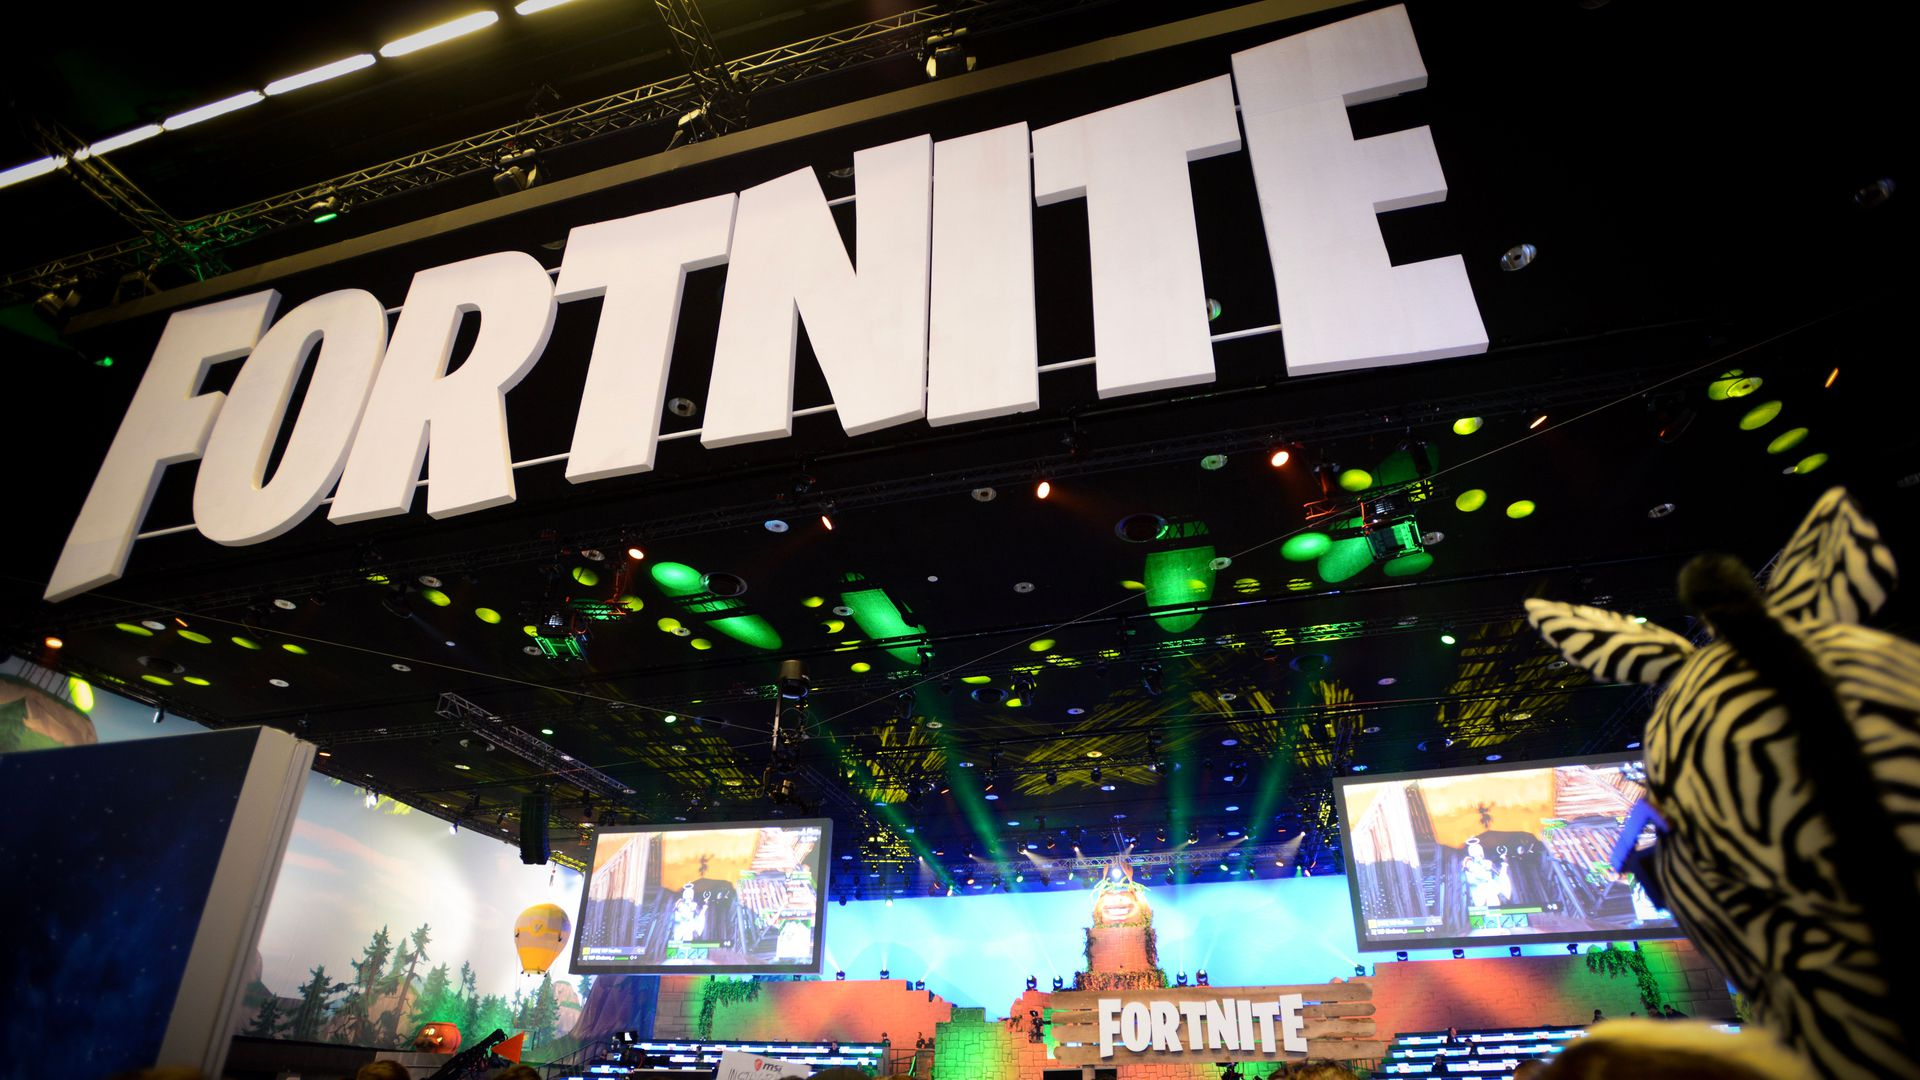 Fortnite returns after 2-day blackout with makeover, updates